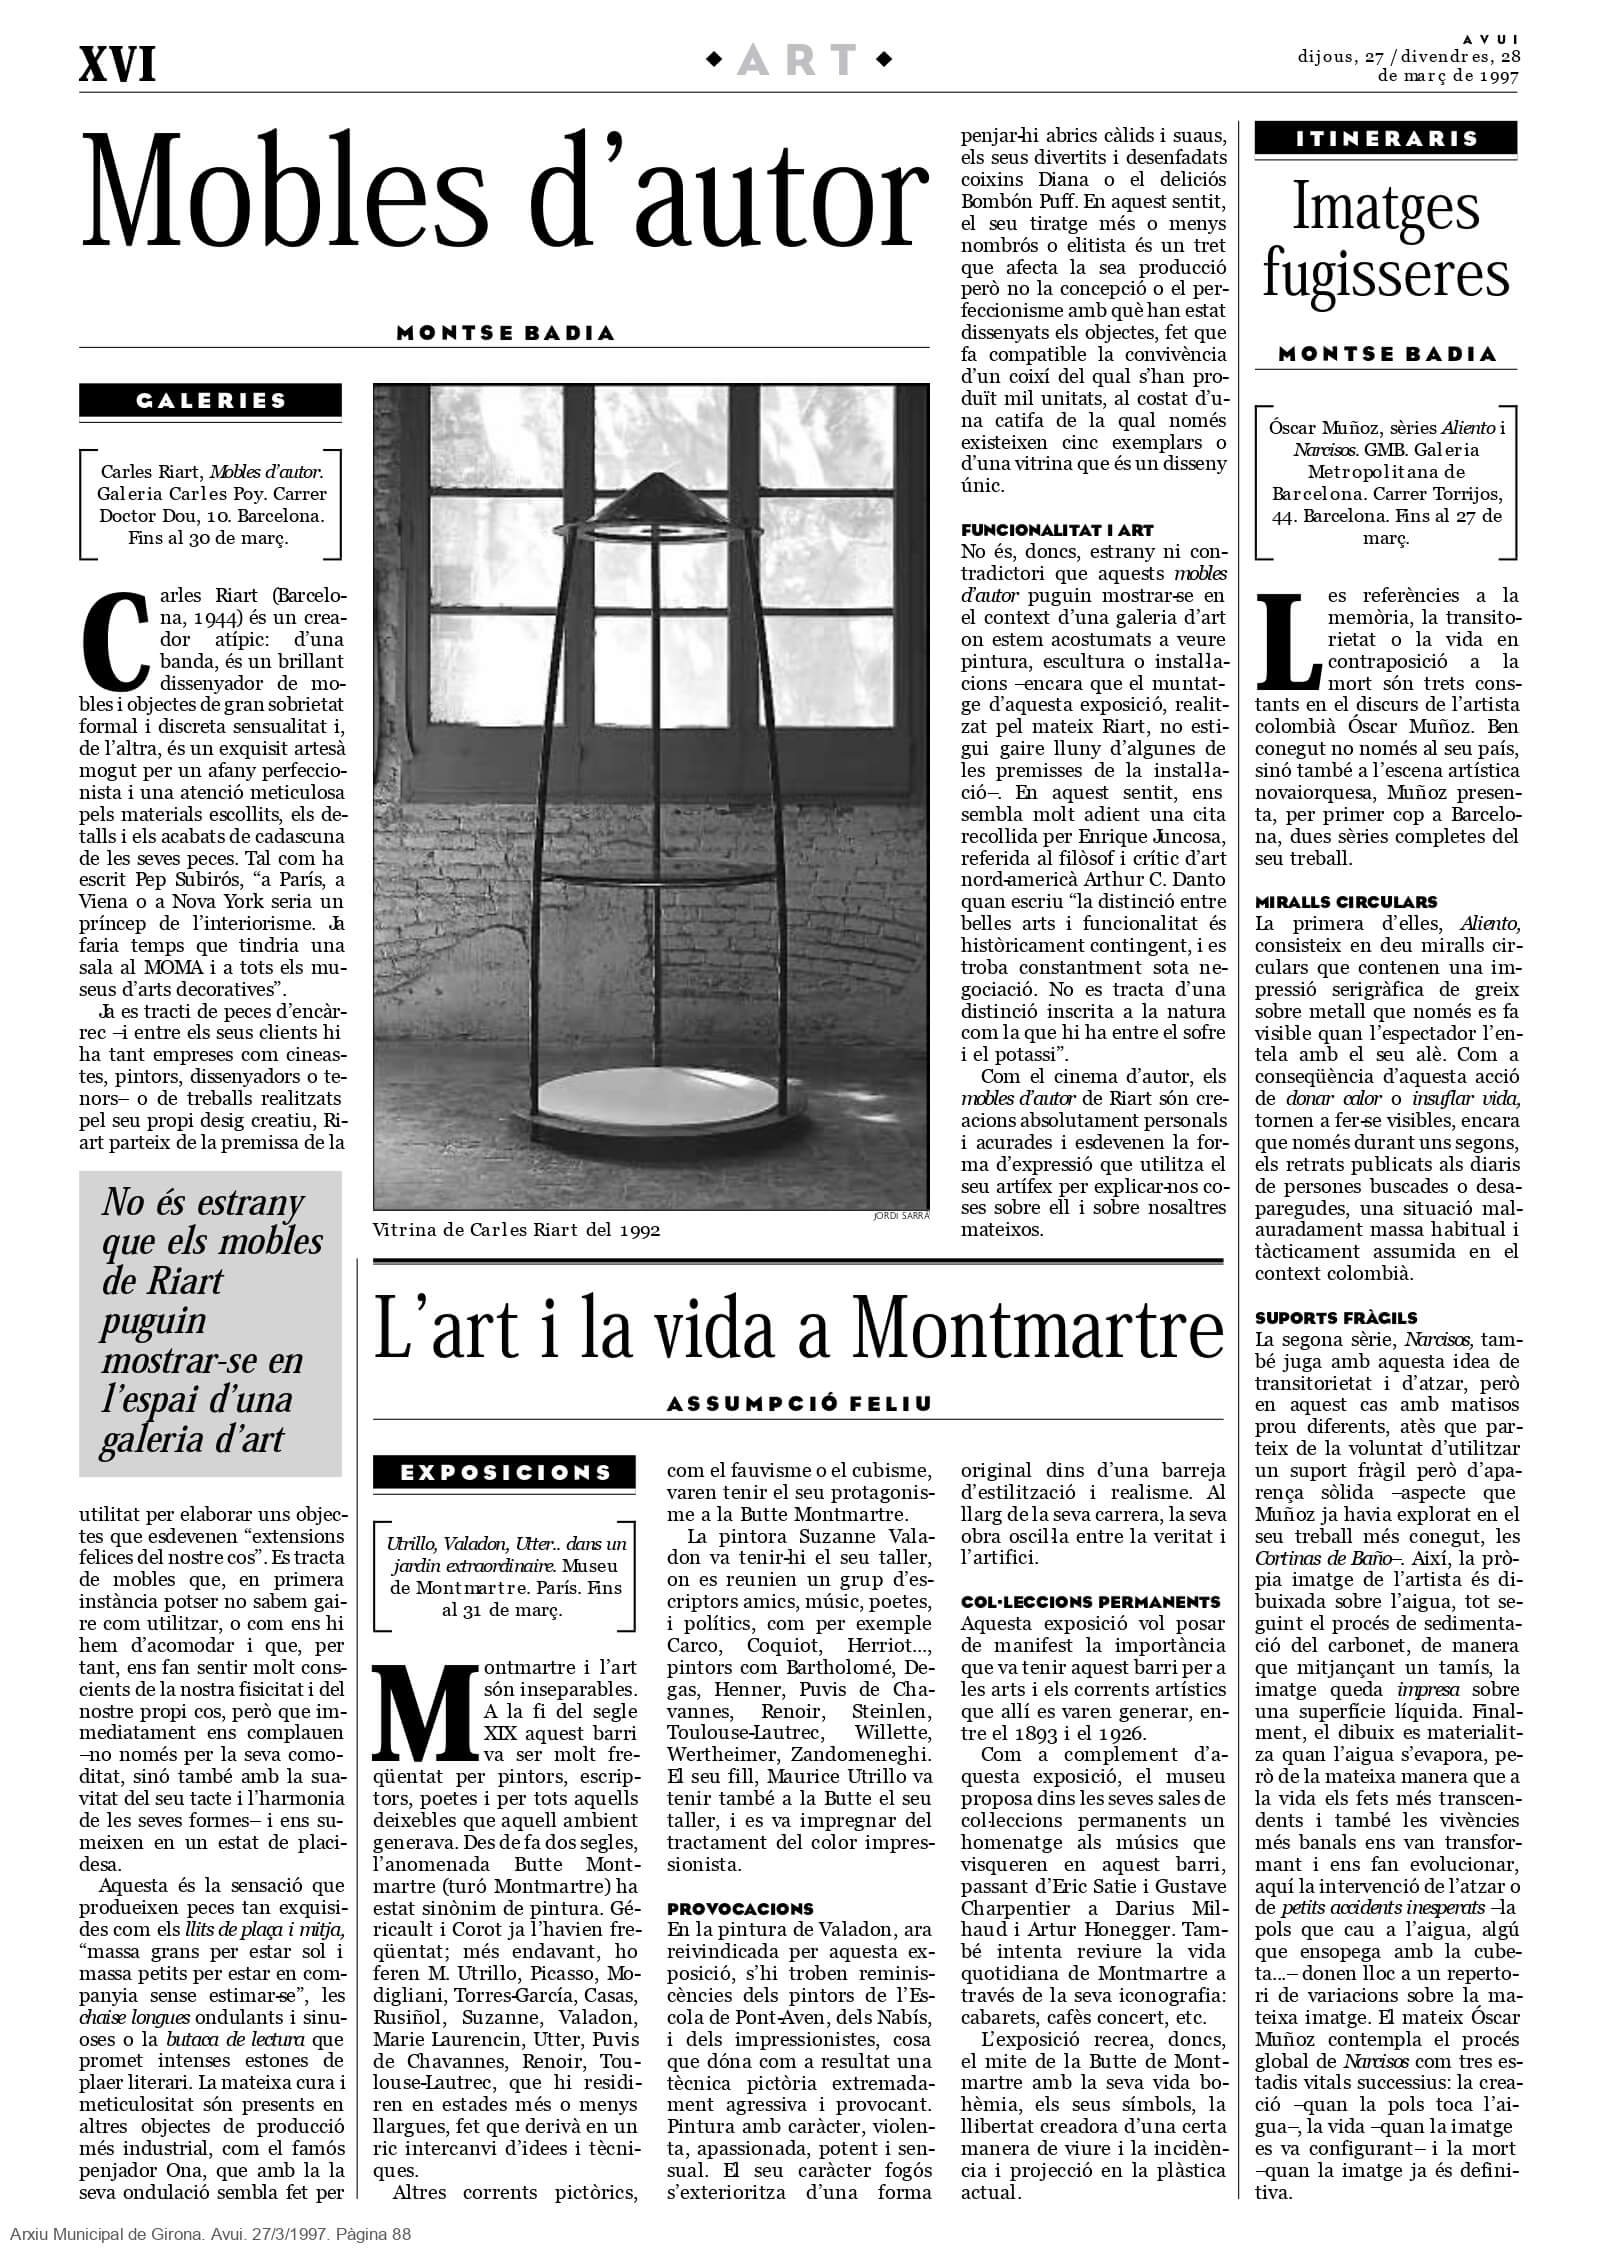 Carles Riart, Mobles d'autor (1)_page-0001